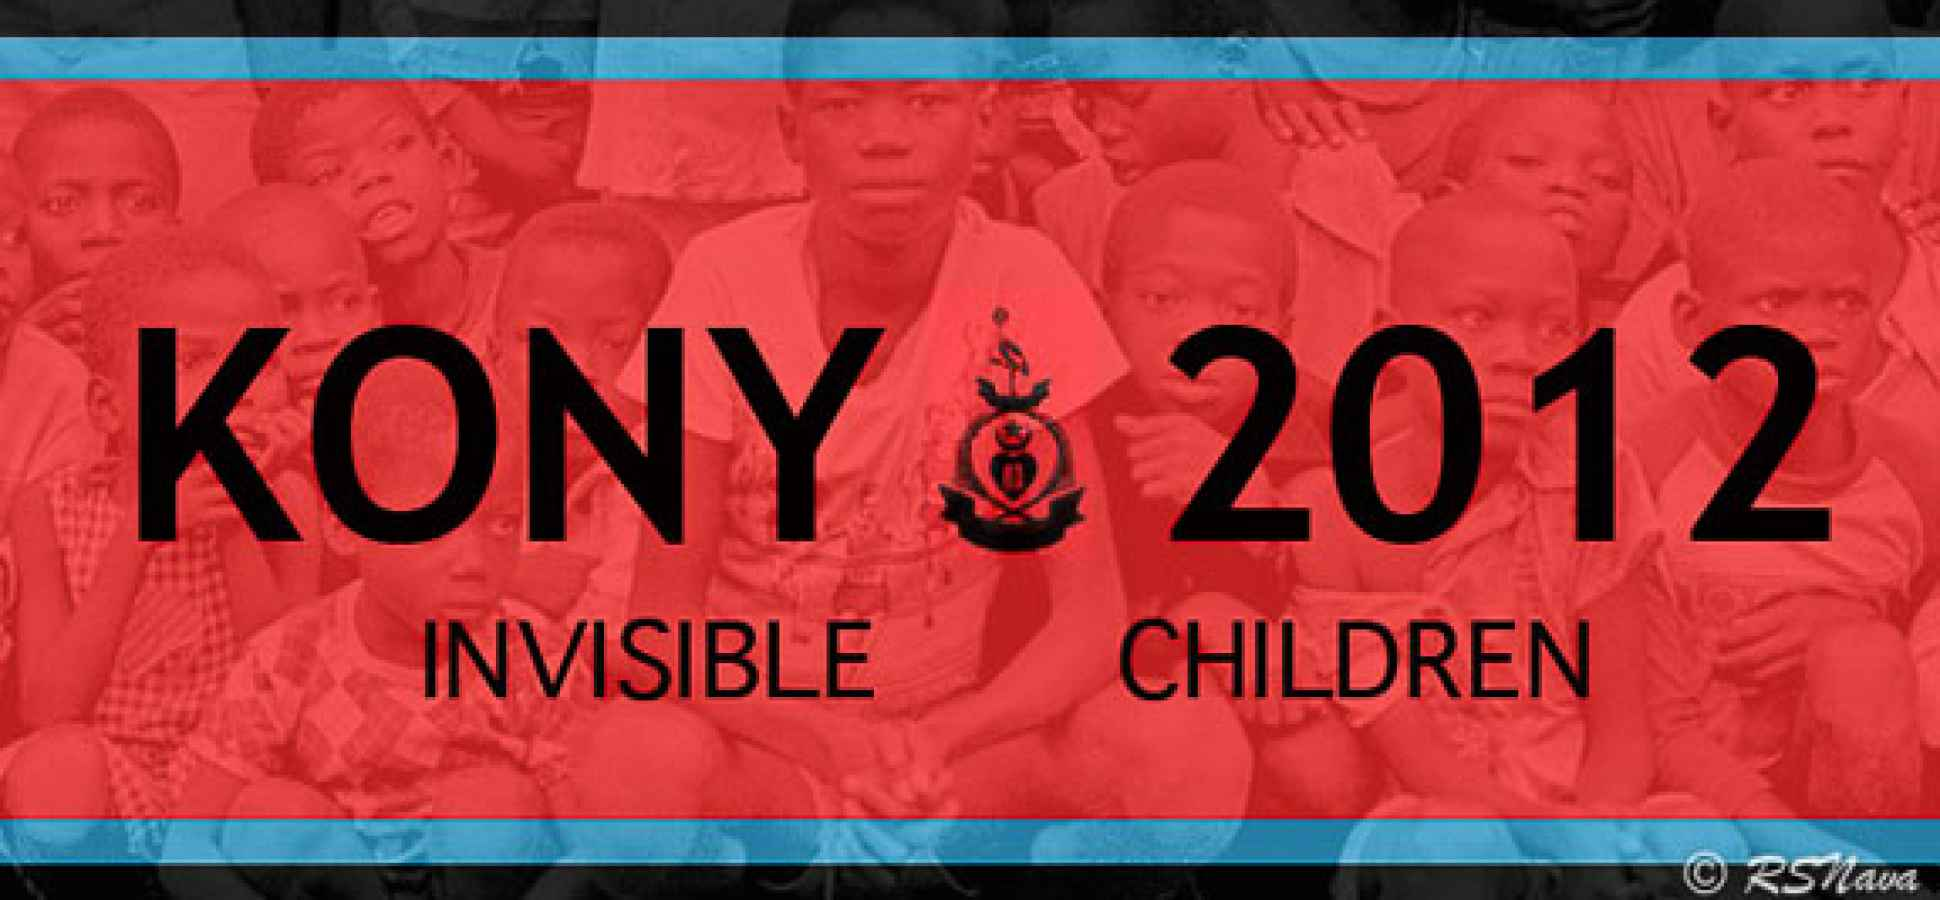 Kony 2012: How to Make a Video Go Viral